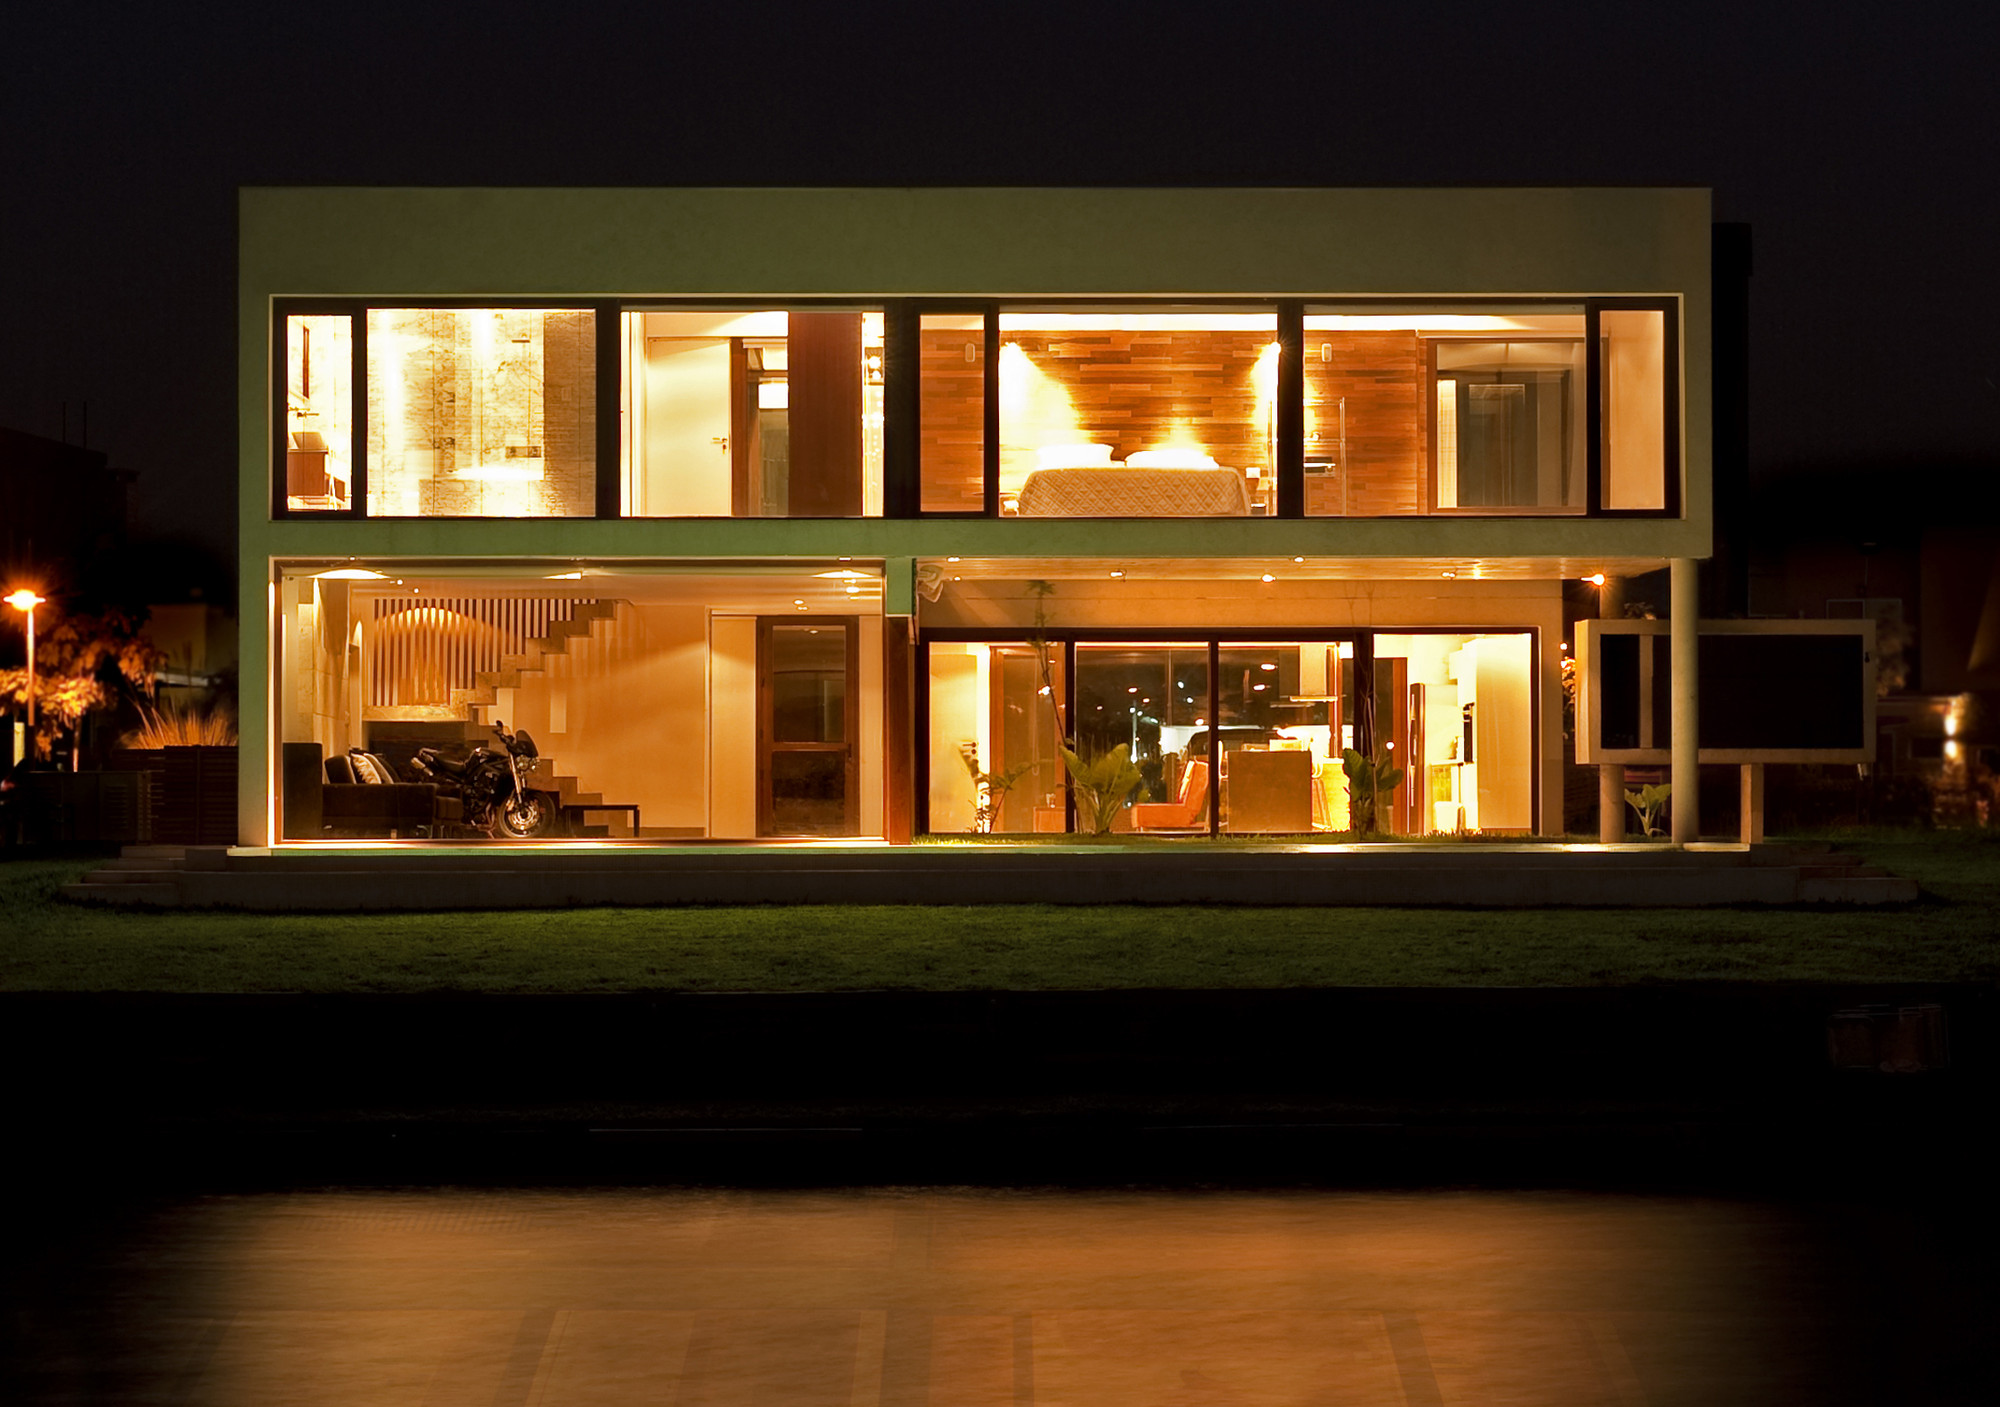 House ef fritz fritz arquitectos archdaily for Modern house at night